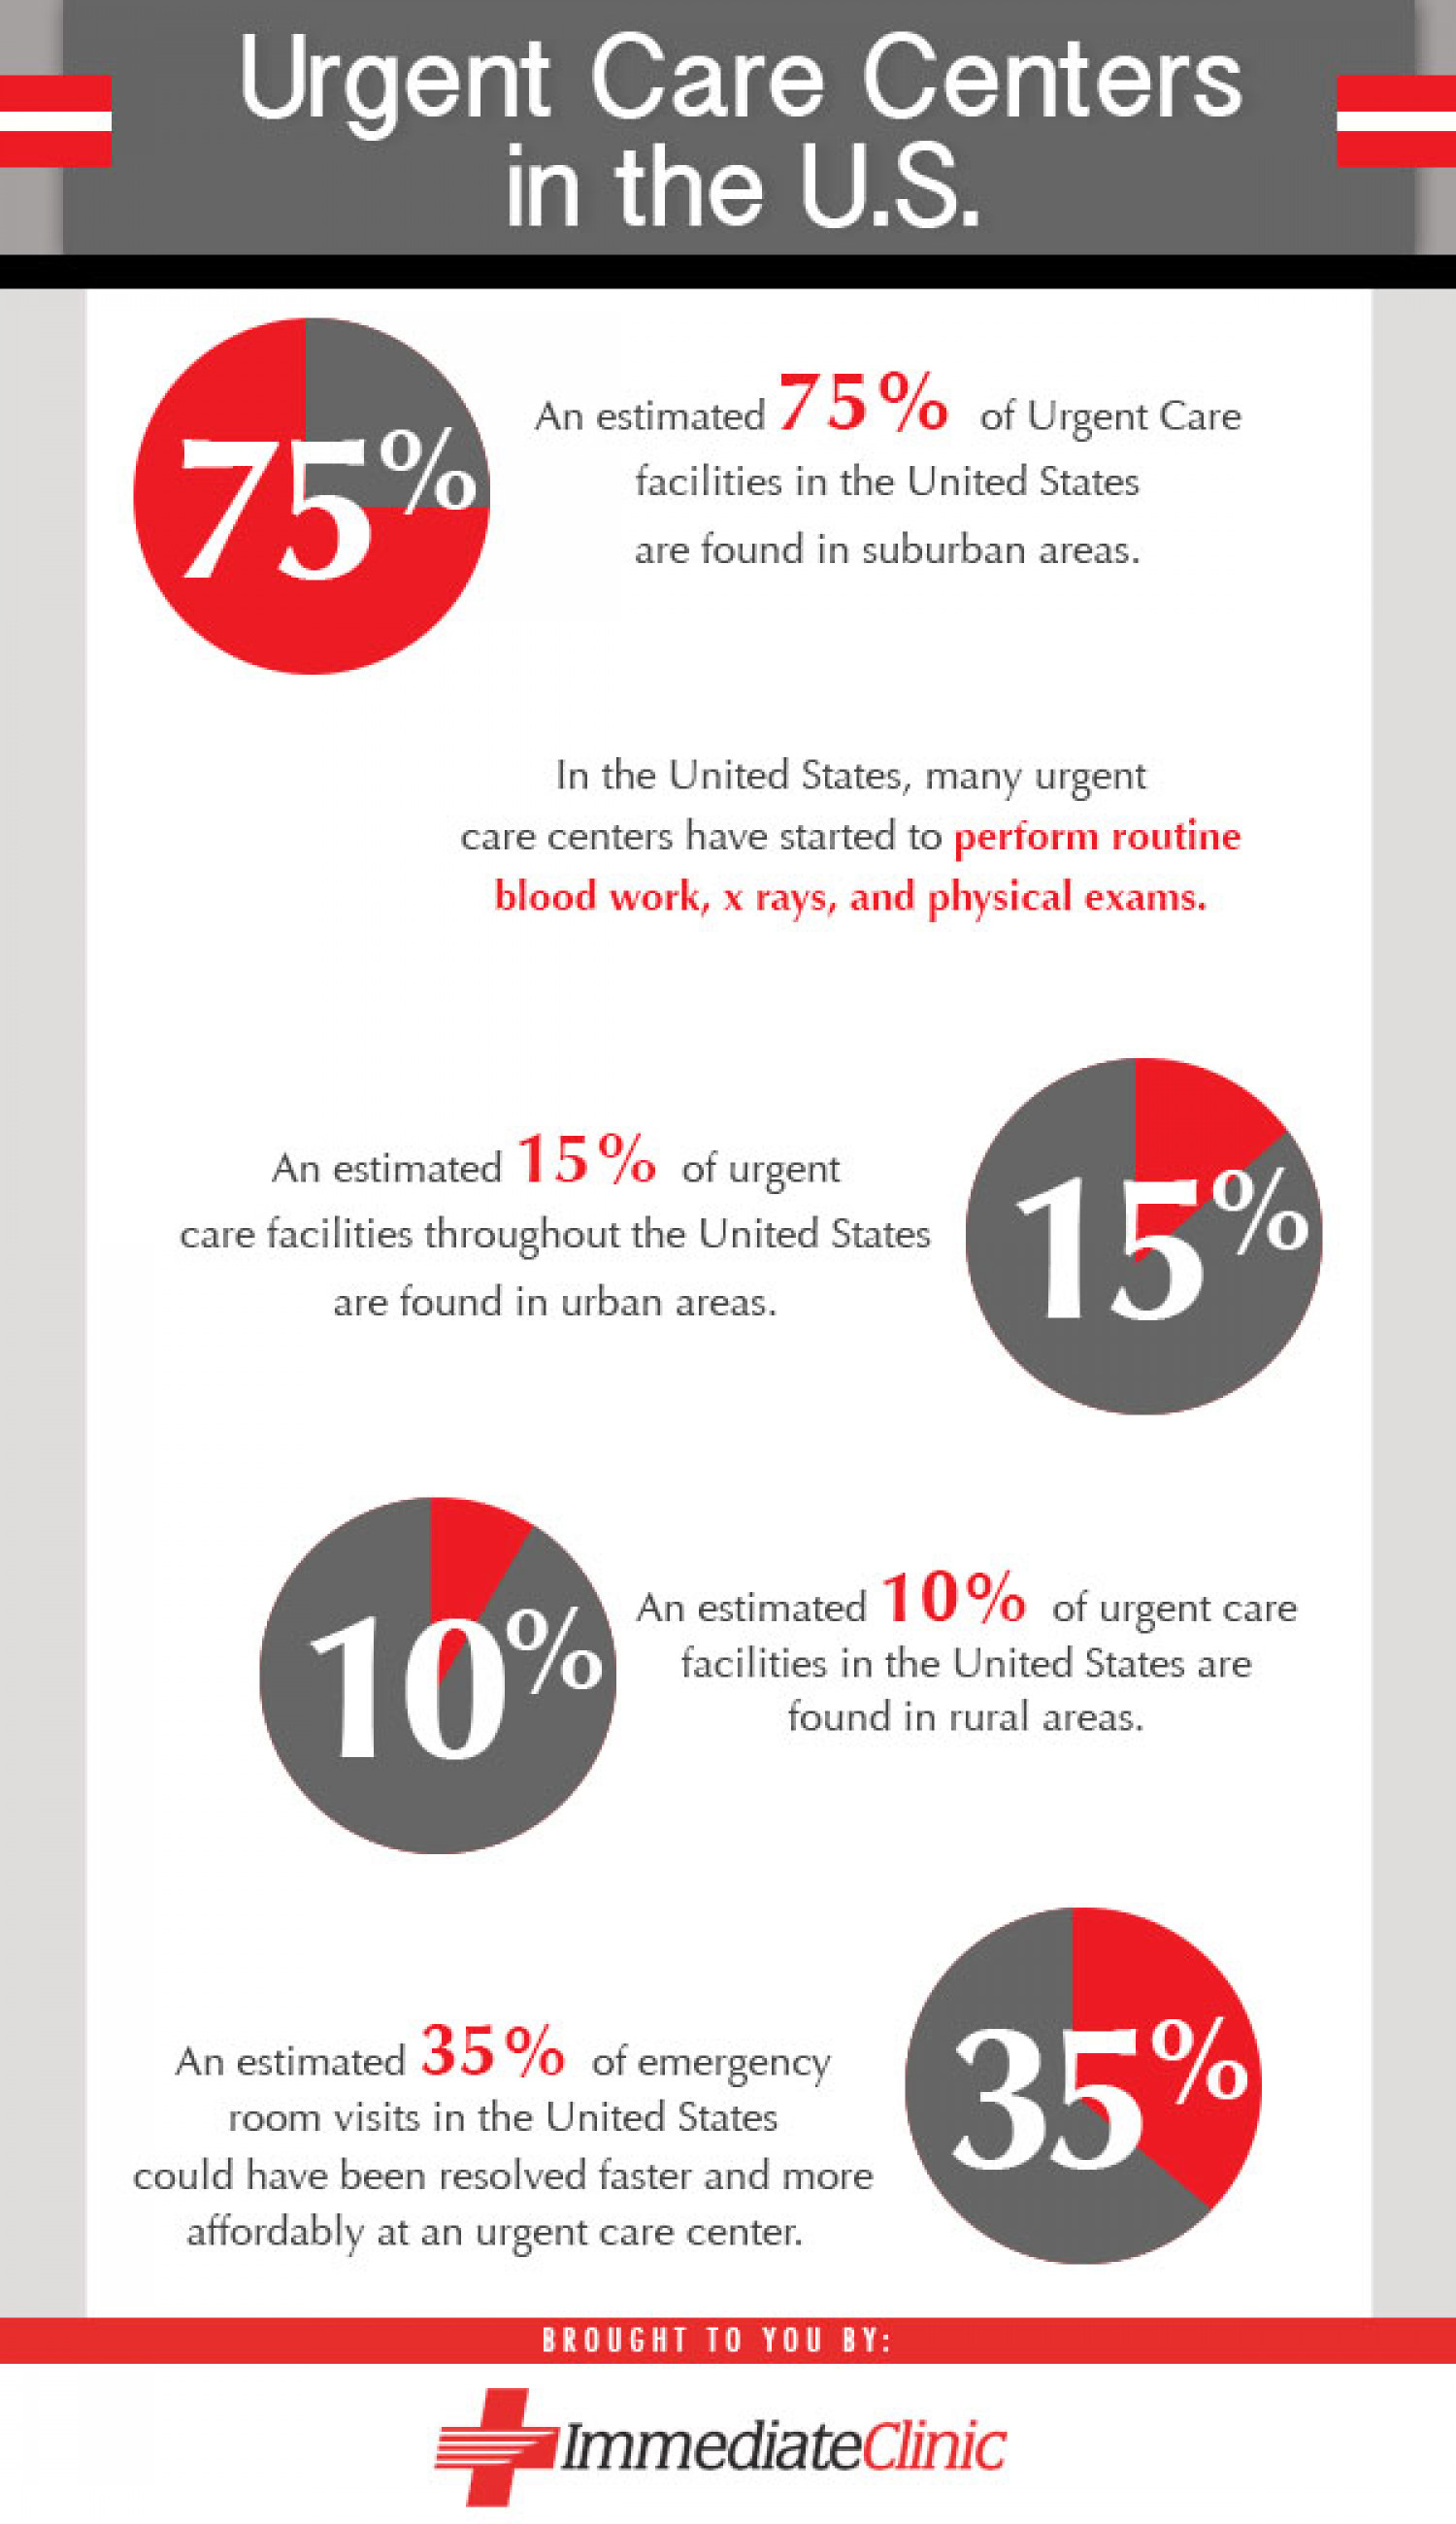 Urgent Care Centers in the U.S. Infographic